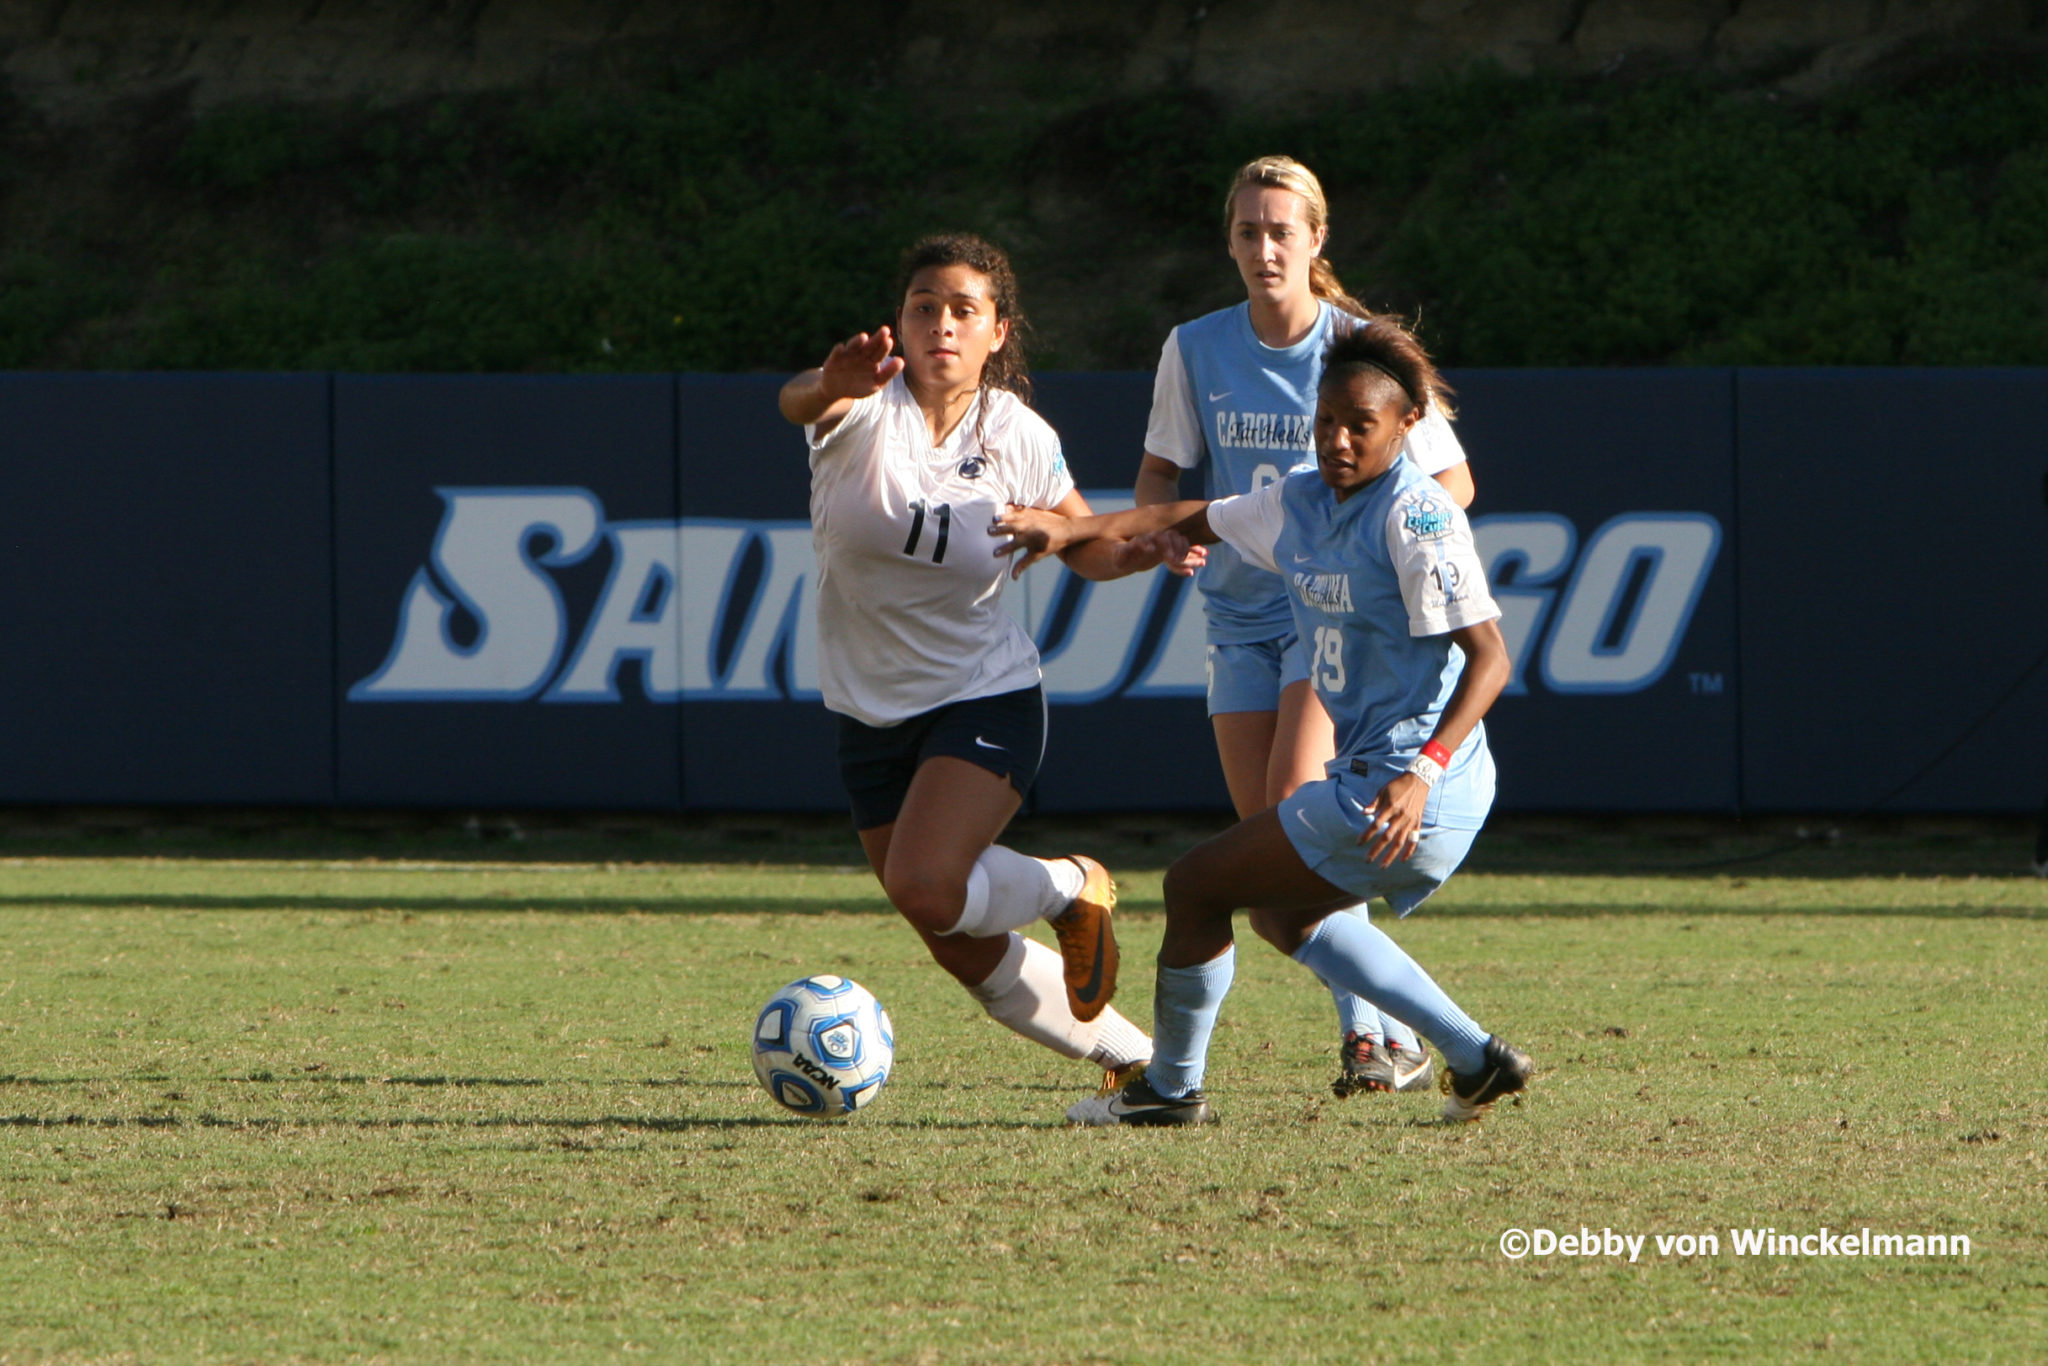 UNC's Crystal Dunn (right, No. 19) won the 2012 MAC Hermann Trophy. (Photo copyright Debby von Winckelmann for EqualizerSoccer.com)